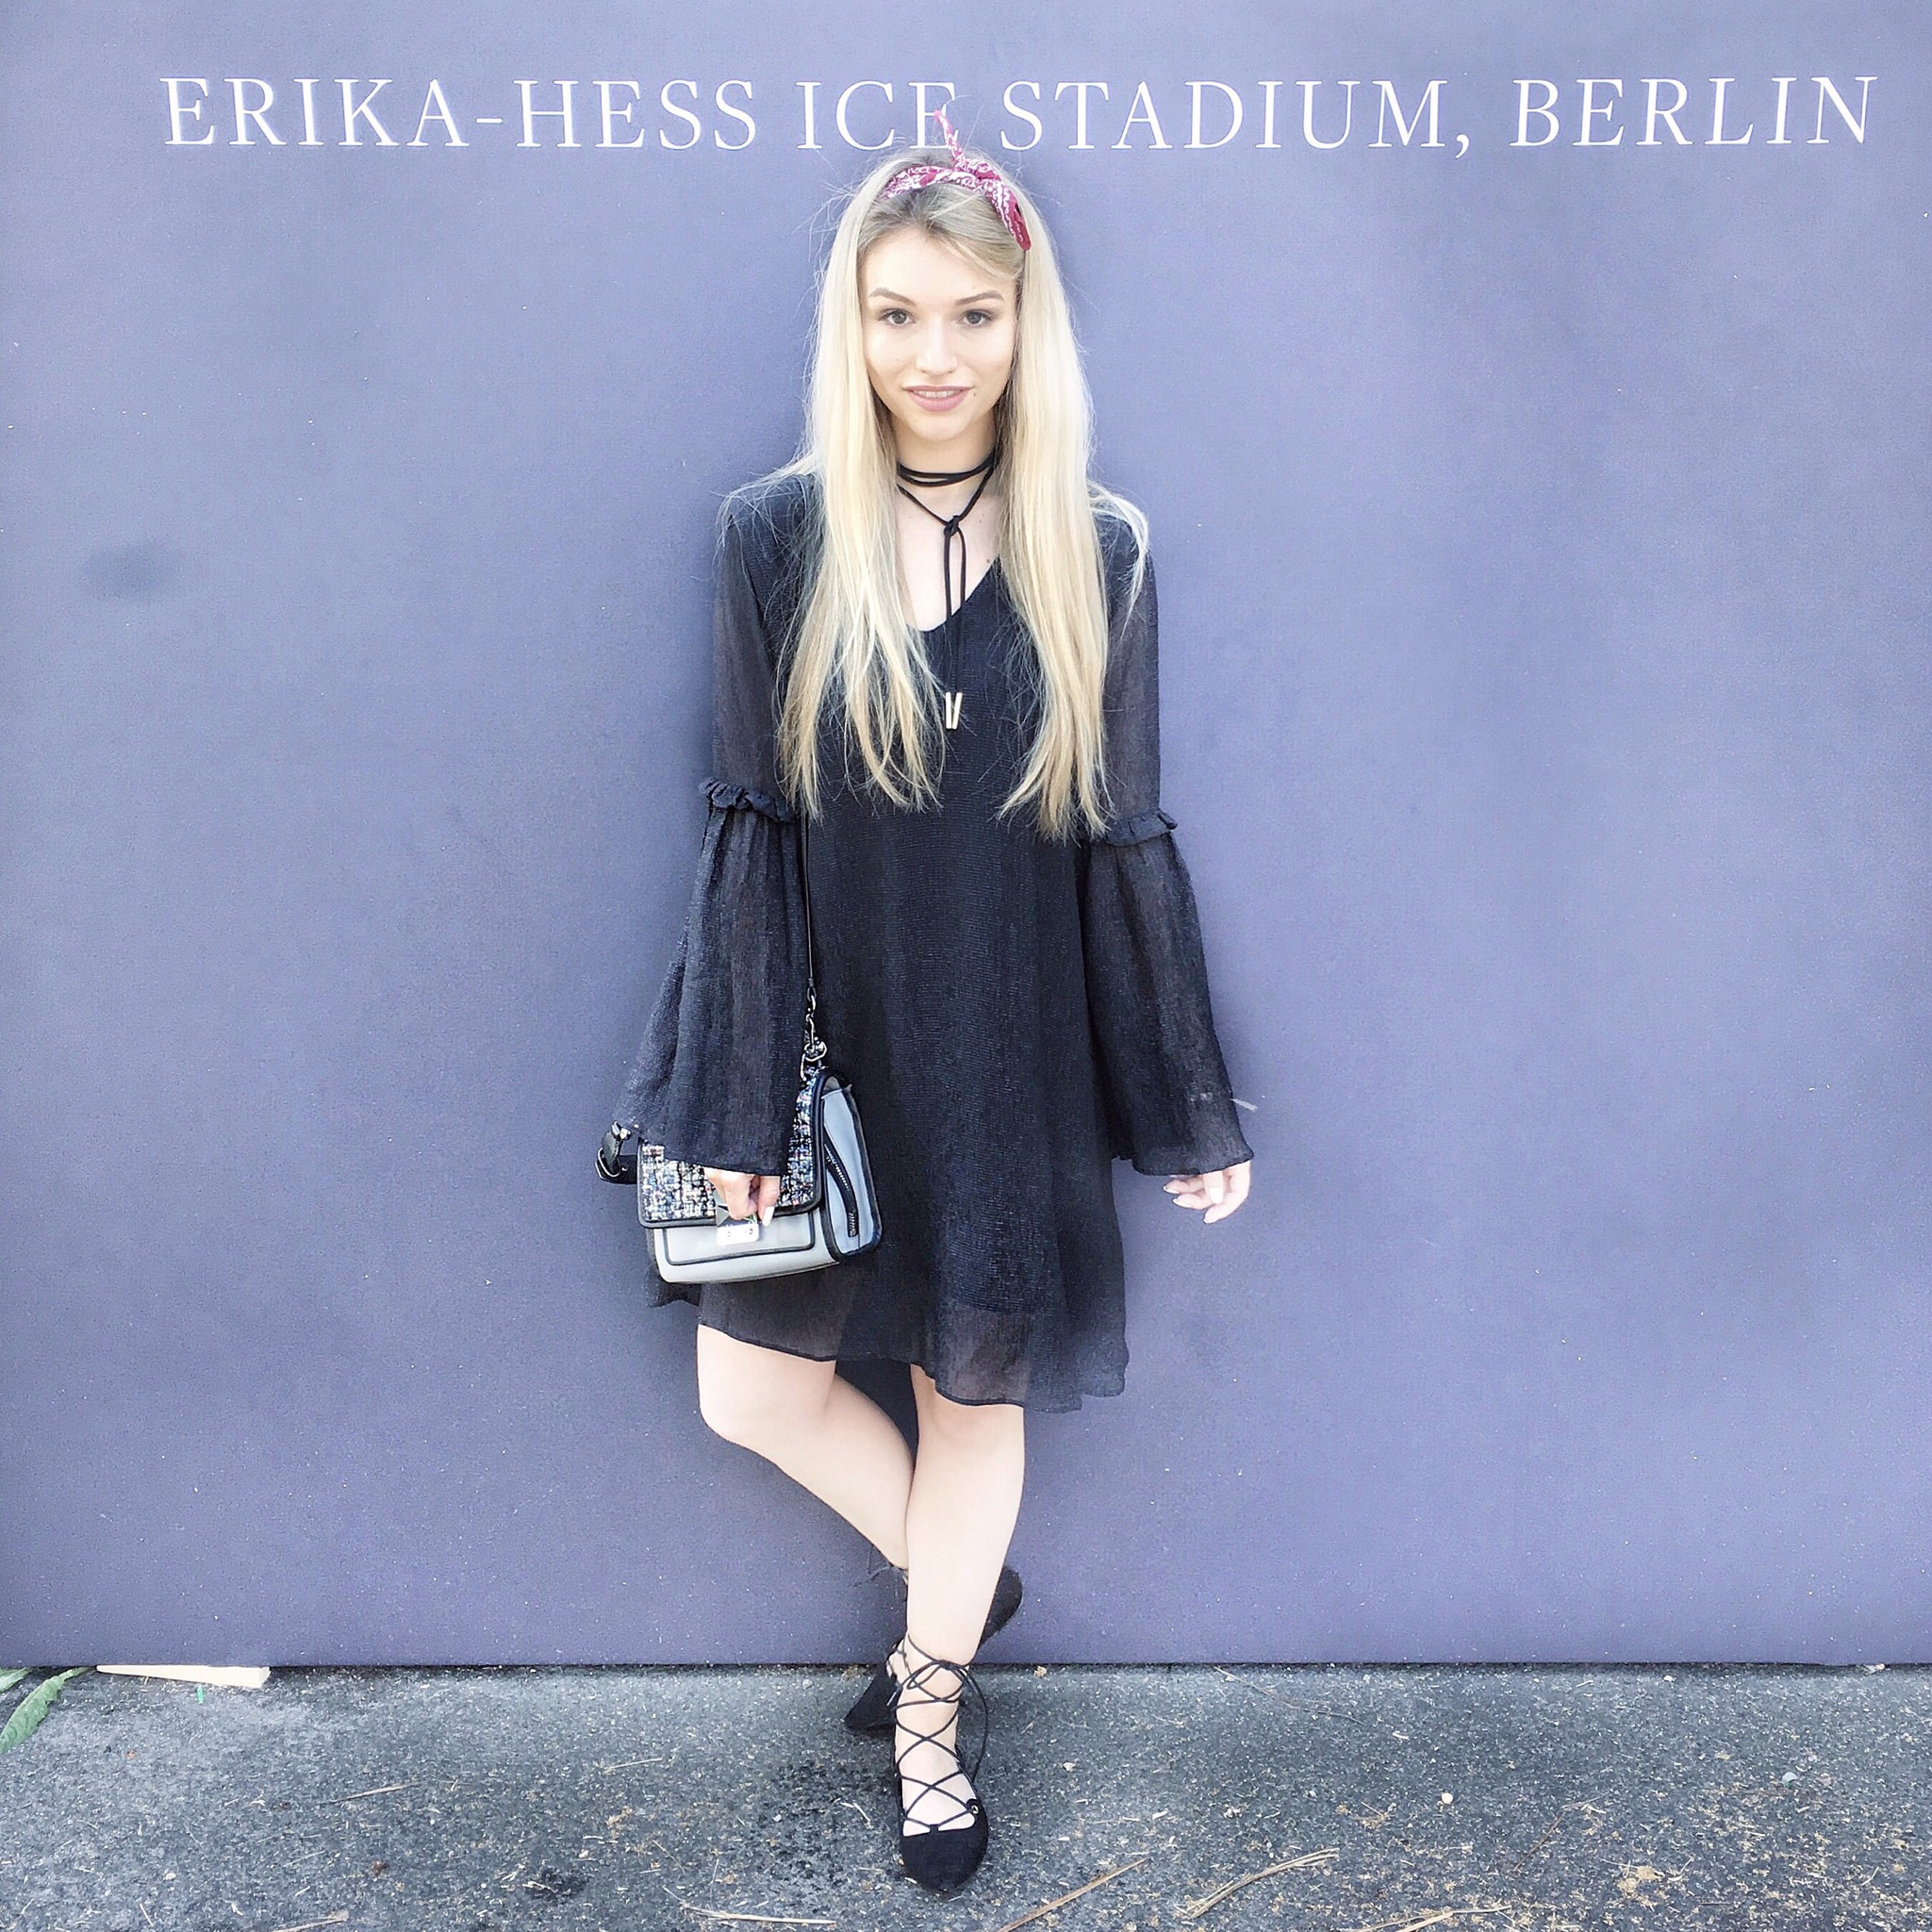 Franziska Elea deutsche Blogger Inspo Modeblog München Fashionblog Mercedes Benz Fashion Week Berlin Outfit Look Streetstyle Rich and Royal Bandana Karl Lagerfeld